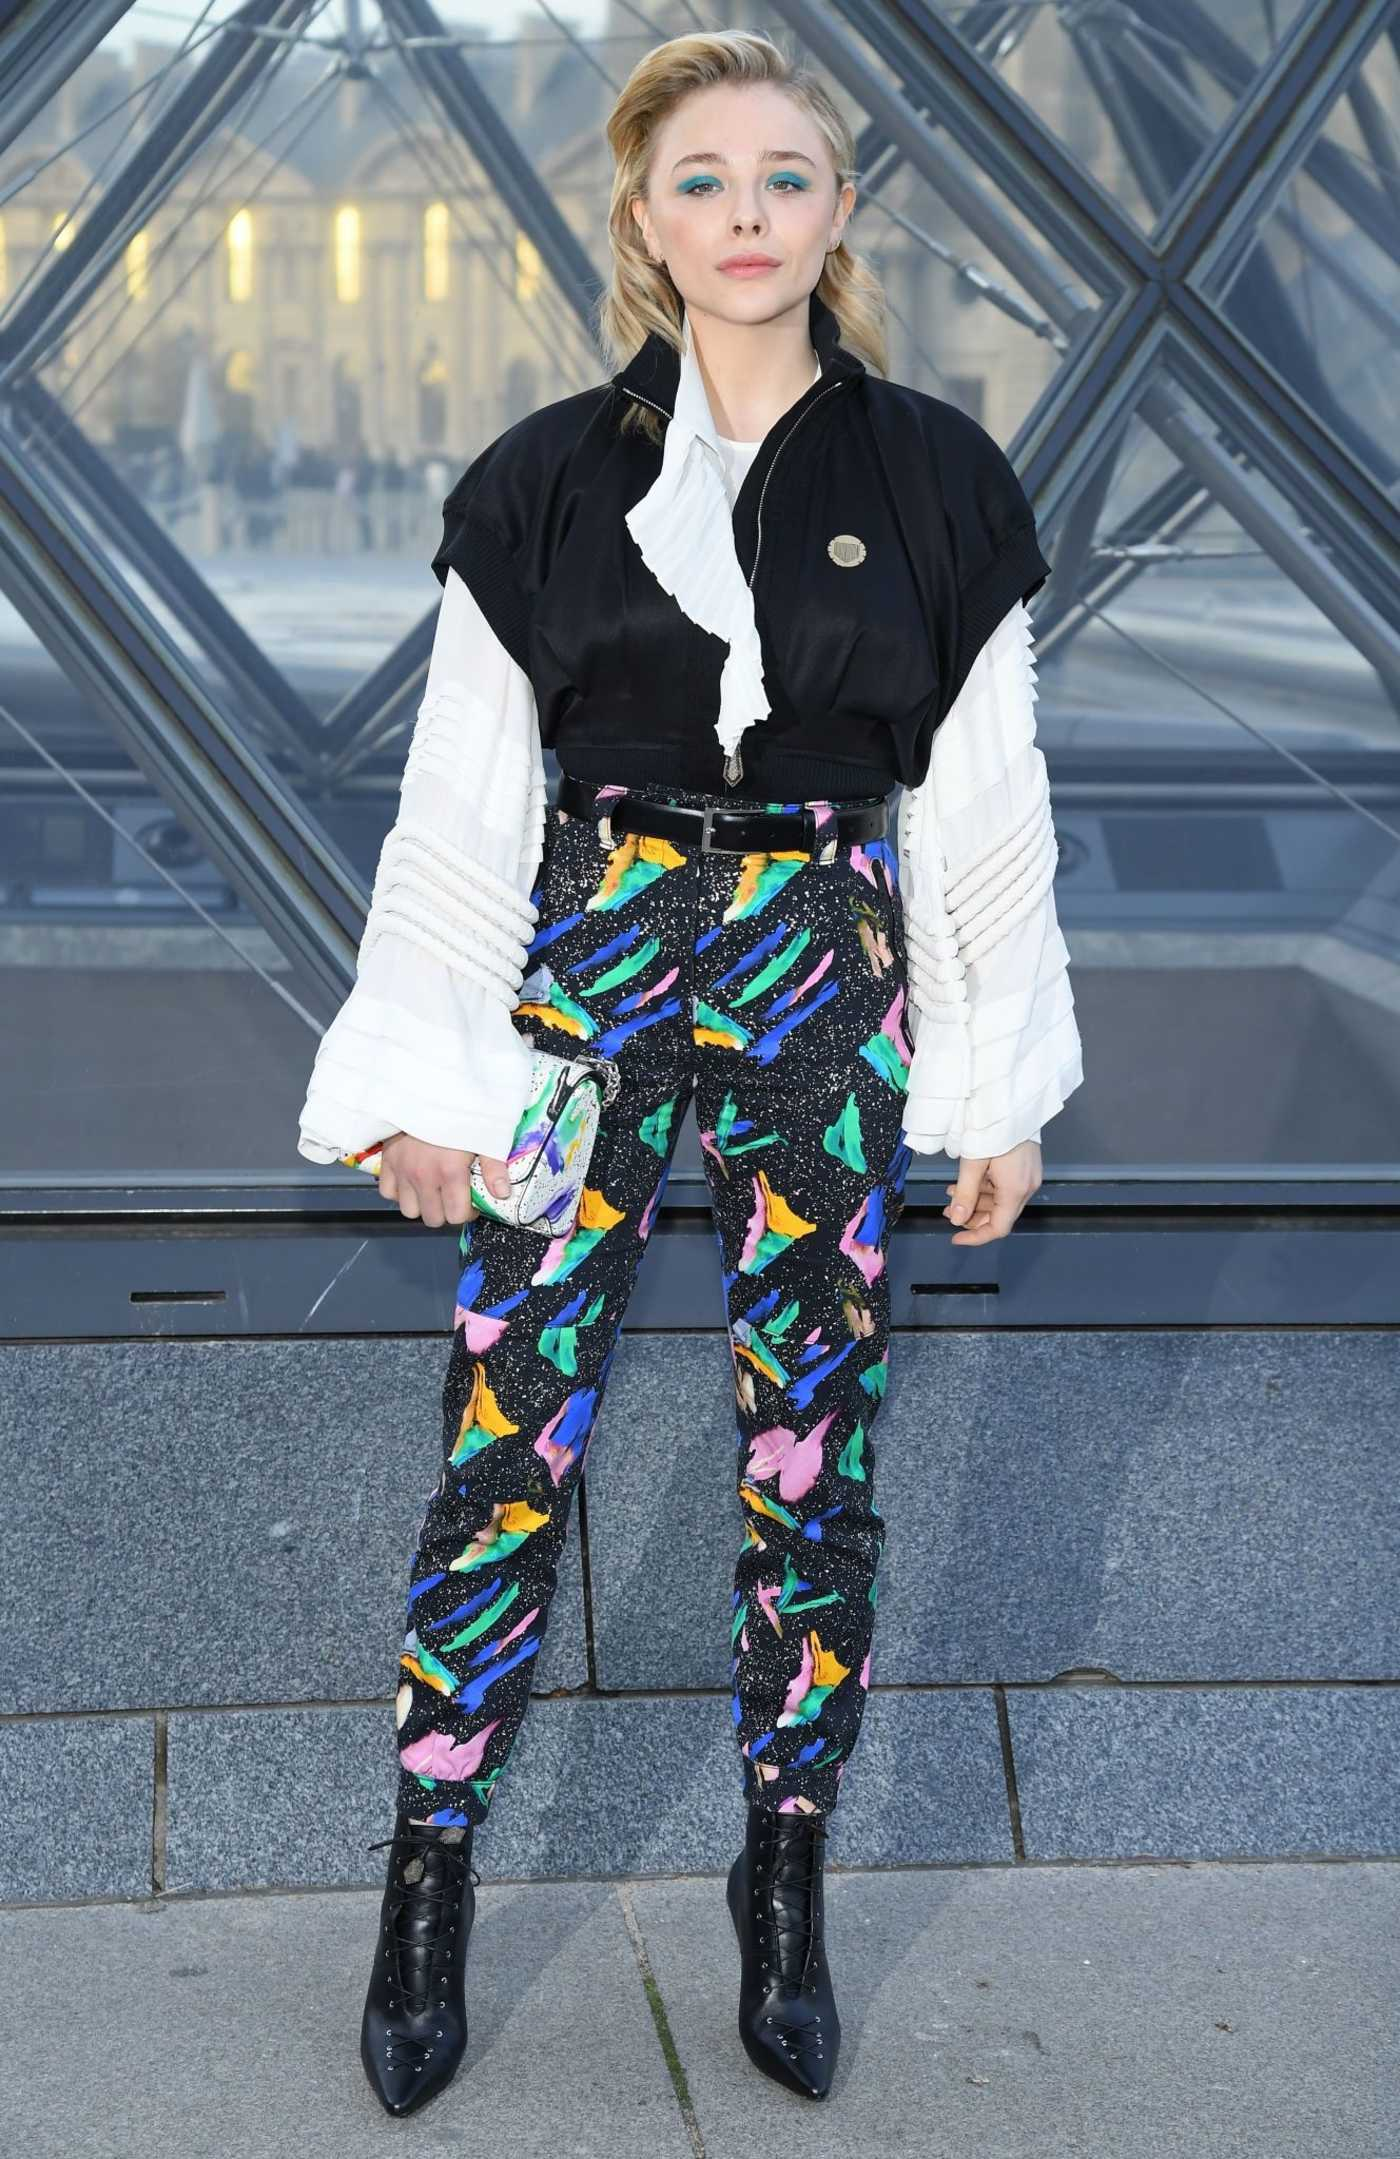 Chloe Moretz Attends the Louis Vuitton Fashion Show During PFW in Paris 03/05/2019